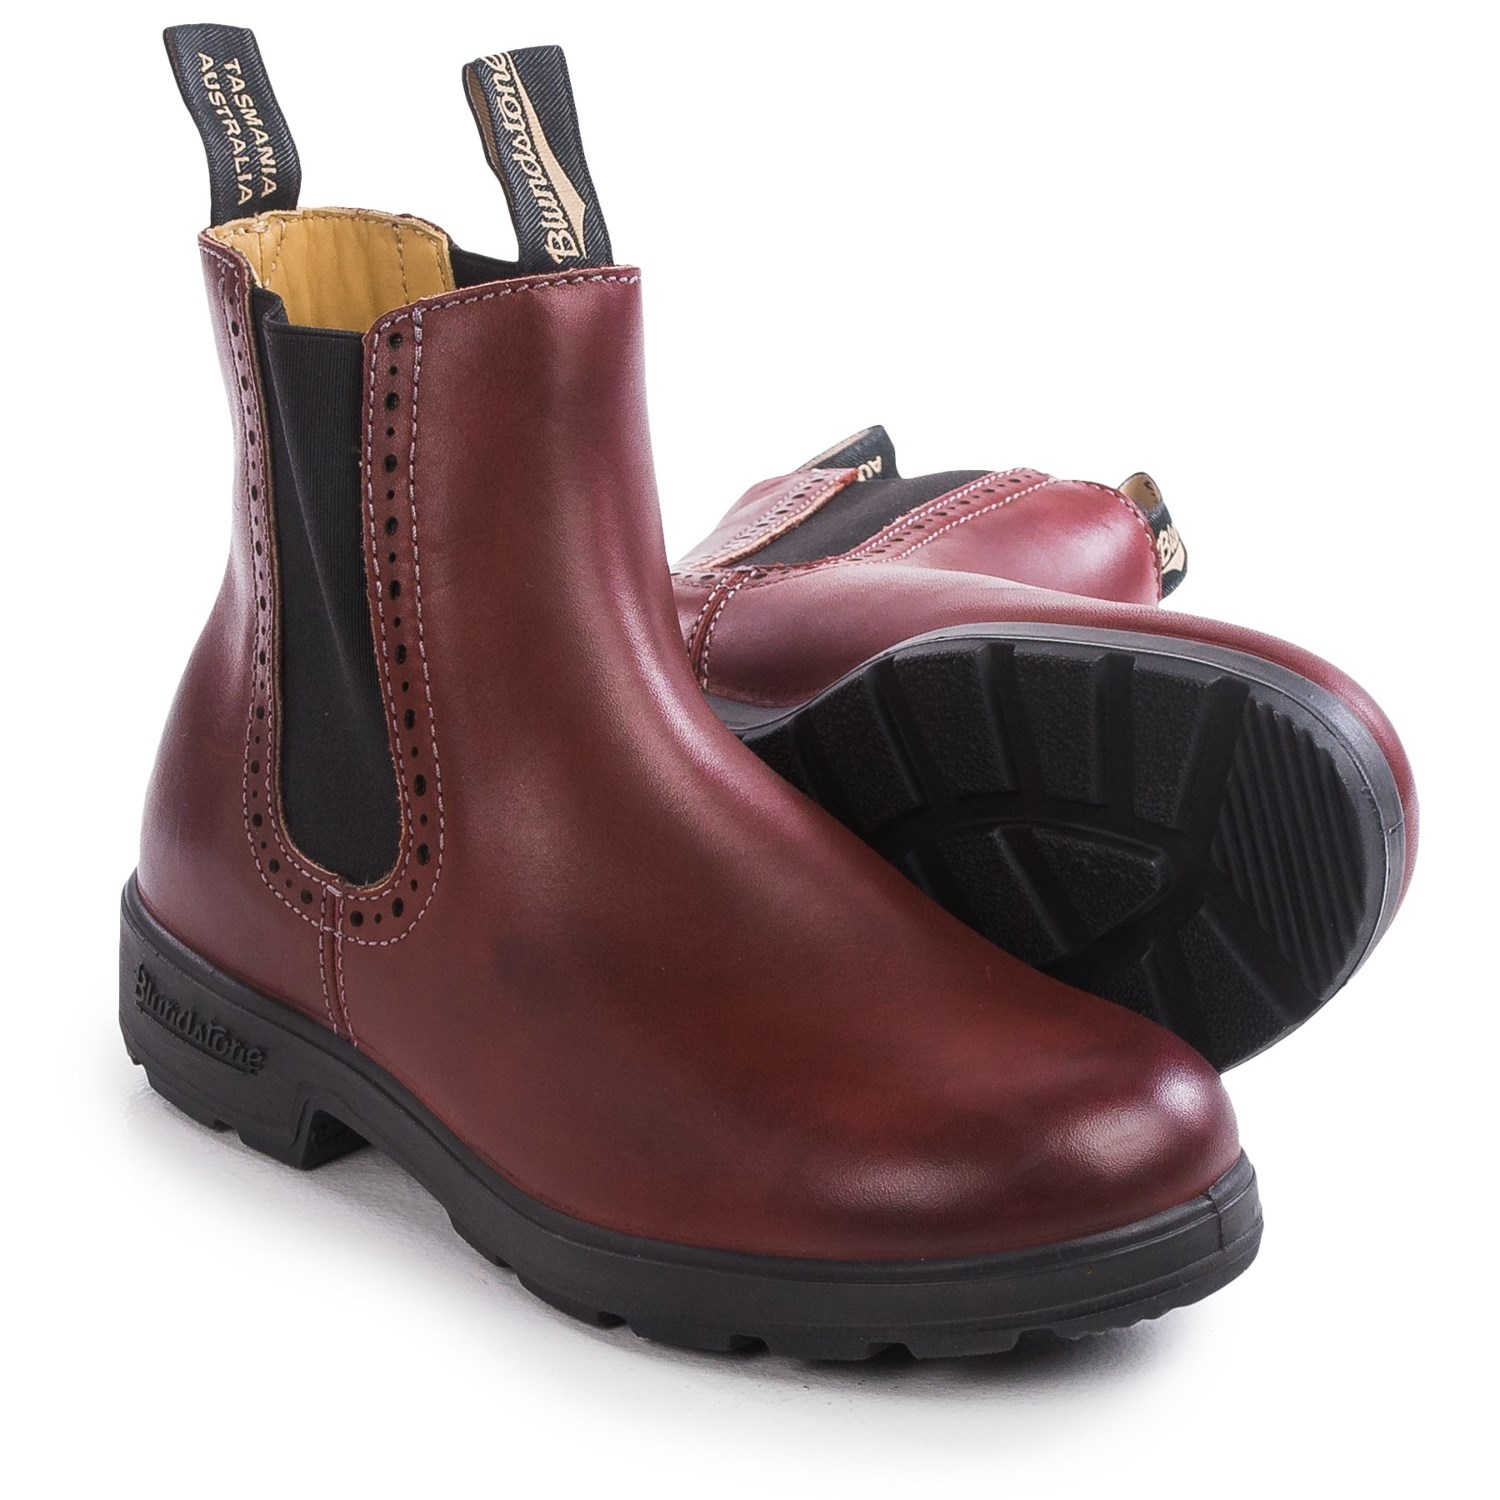 Blundstone 1443 Pull-On Boots (For Women)